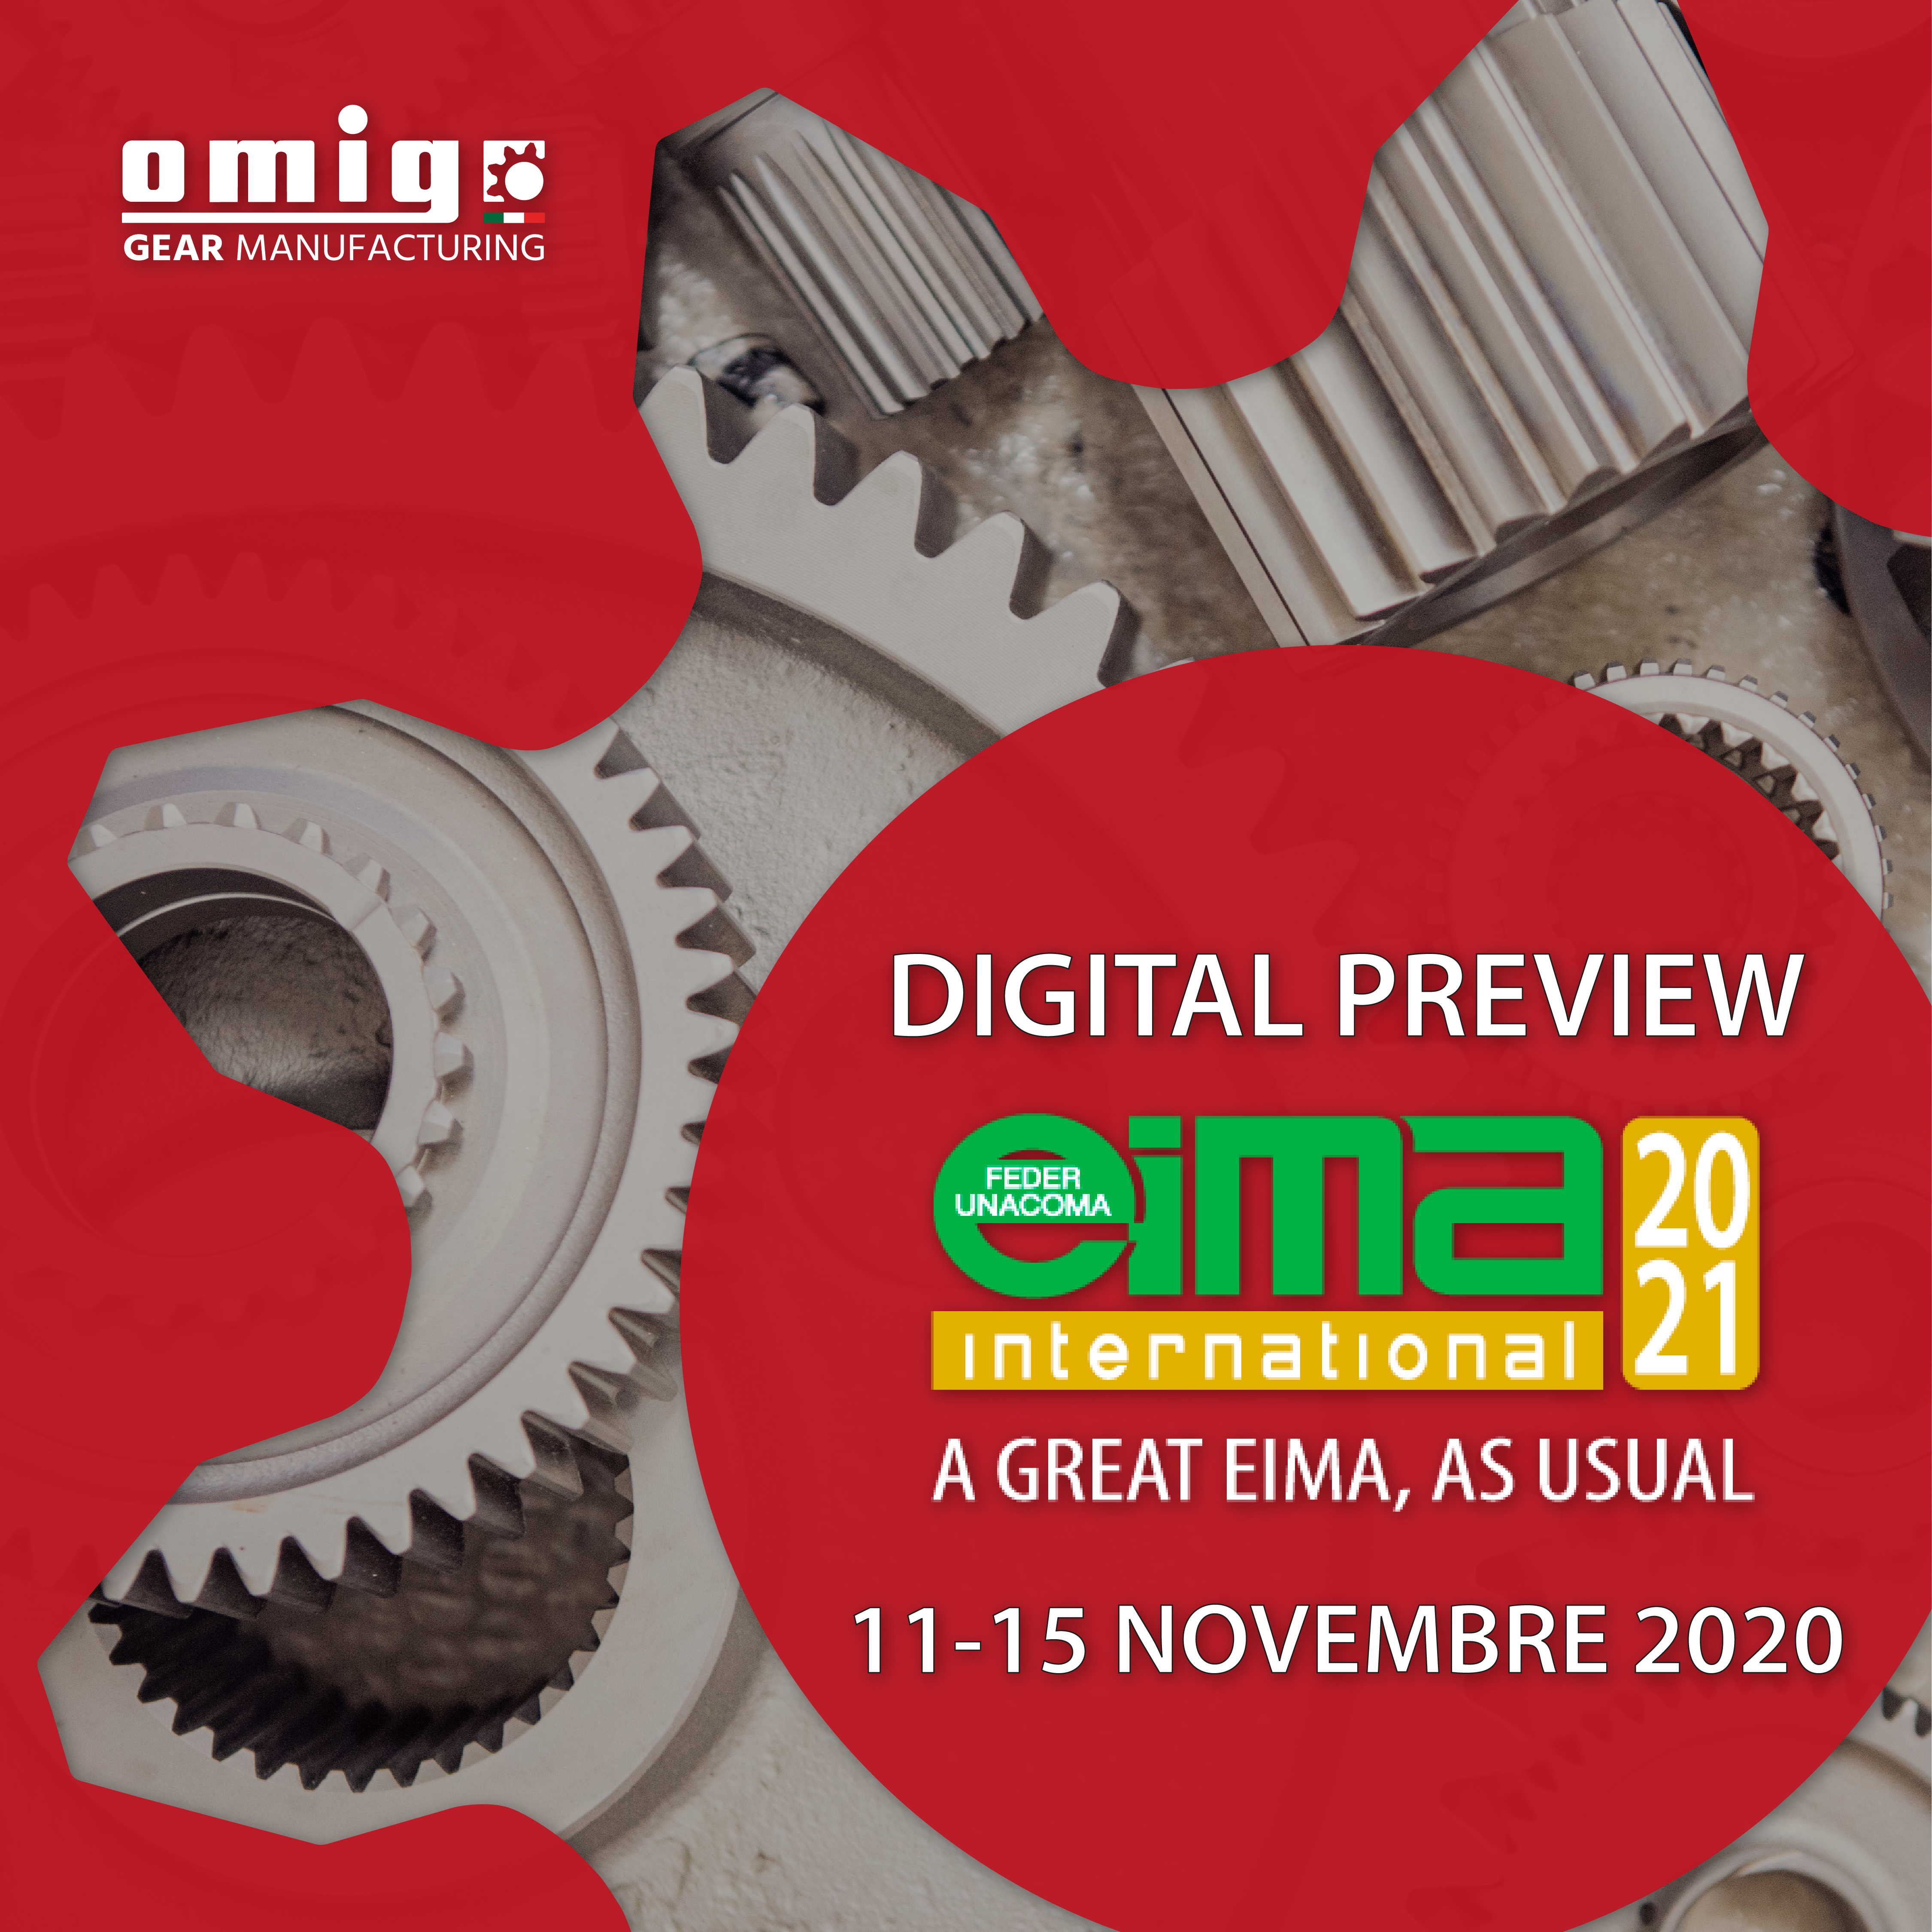 2020_10_14 - News - EIMA SOCIAL WALL - remind DIGITAL PREVIEW